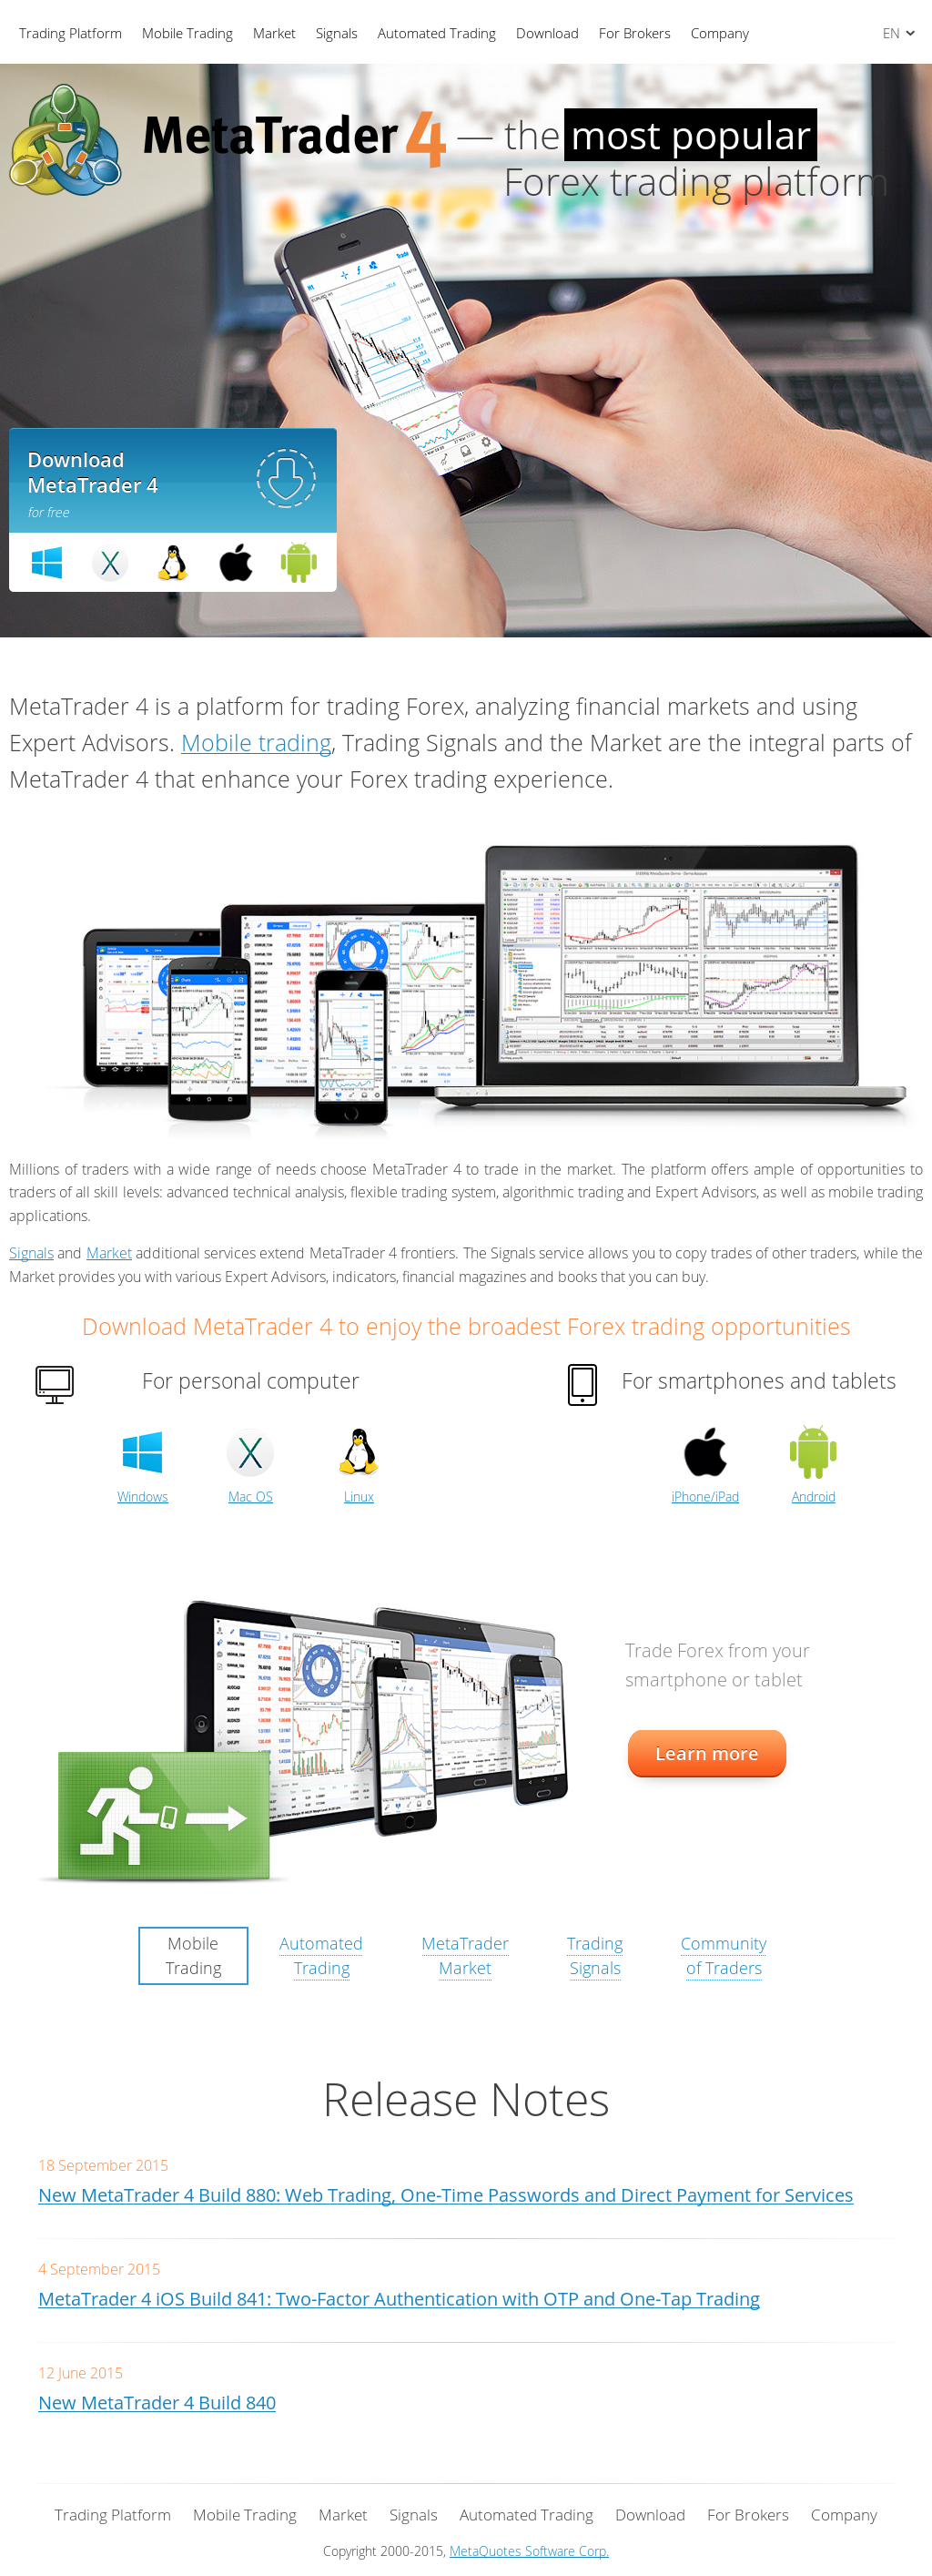 MetaTrader 4 Competitors, Revenue and Employees - Owler